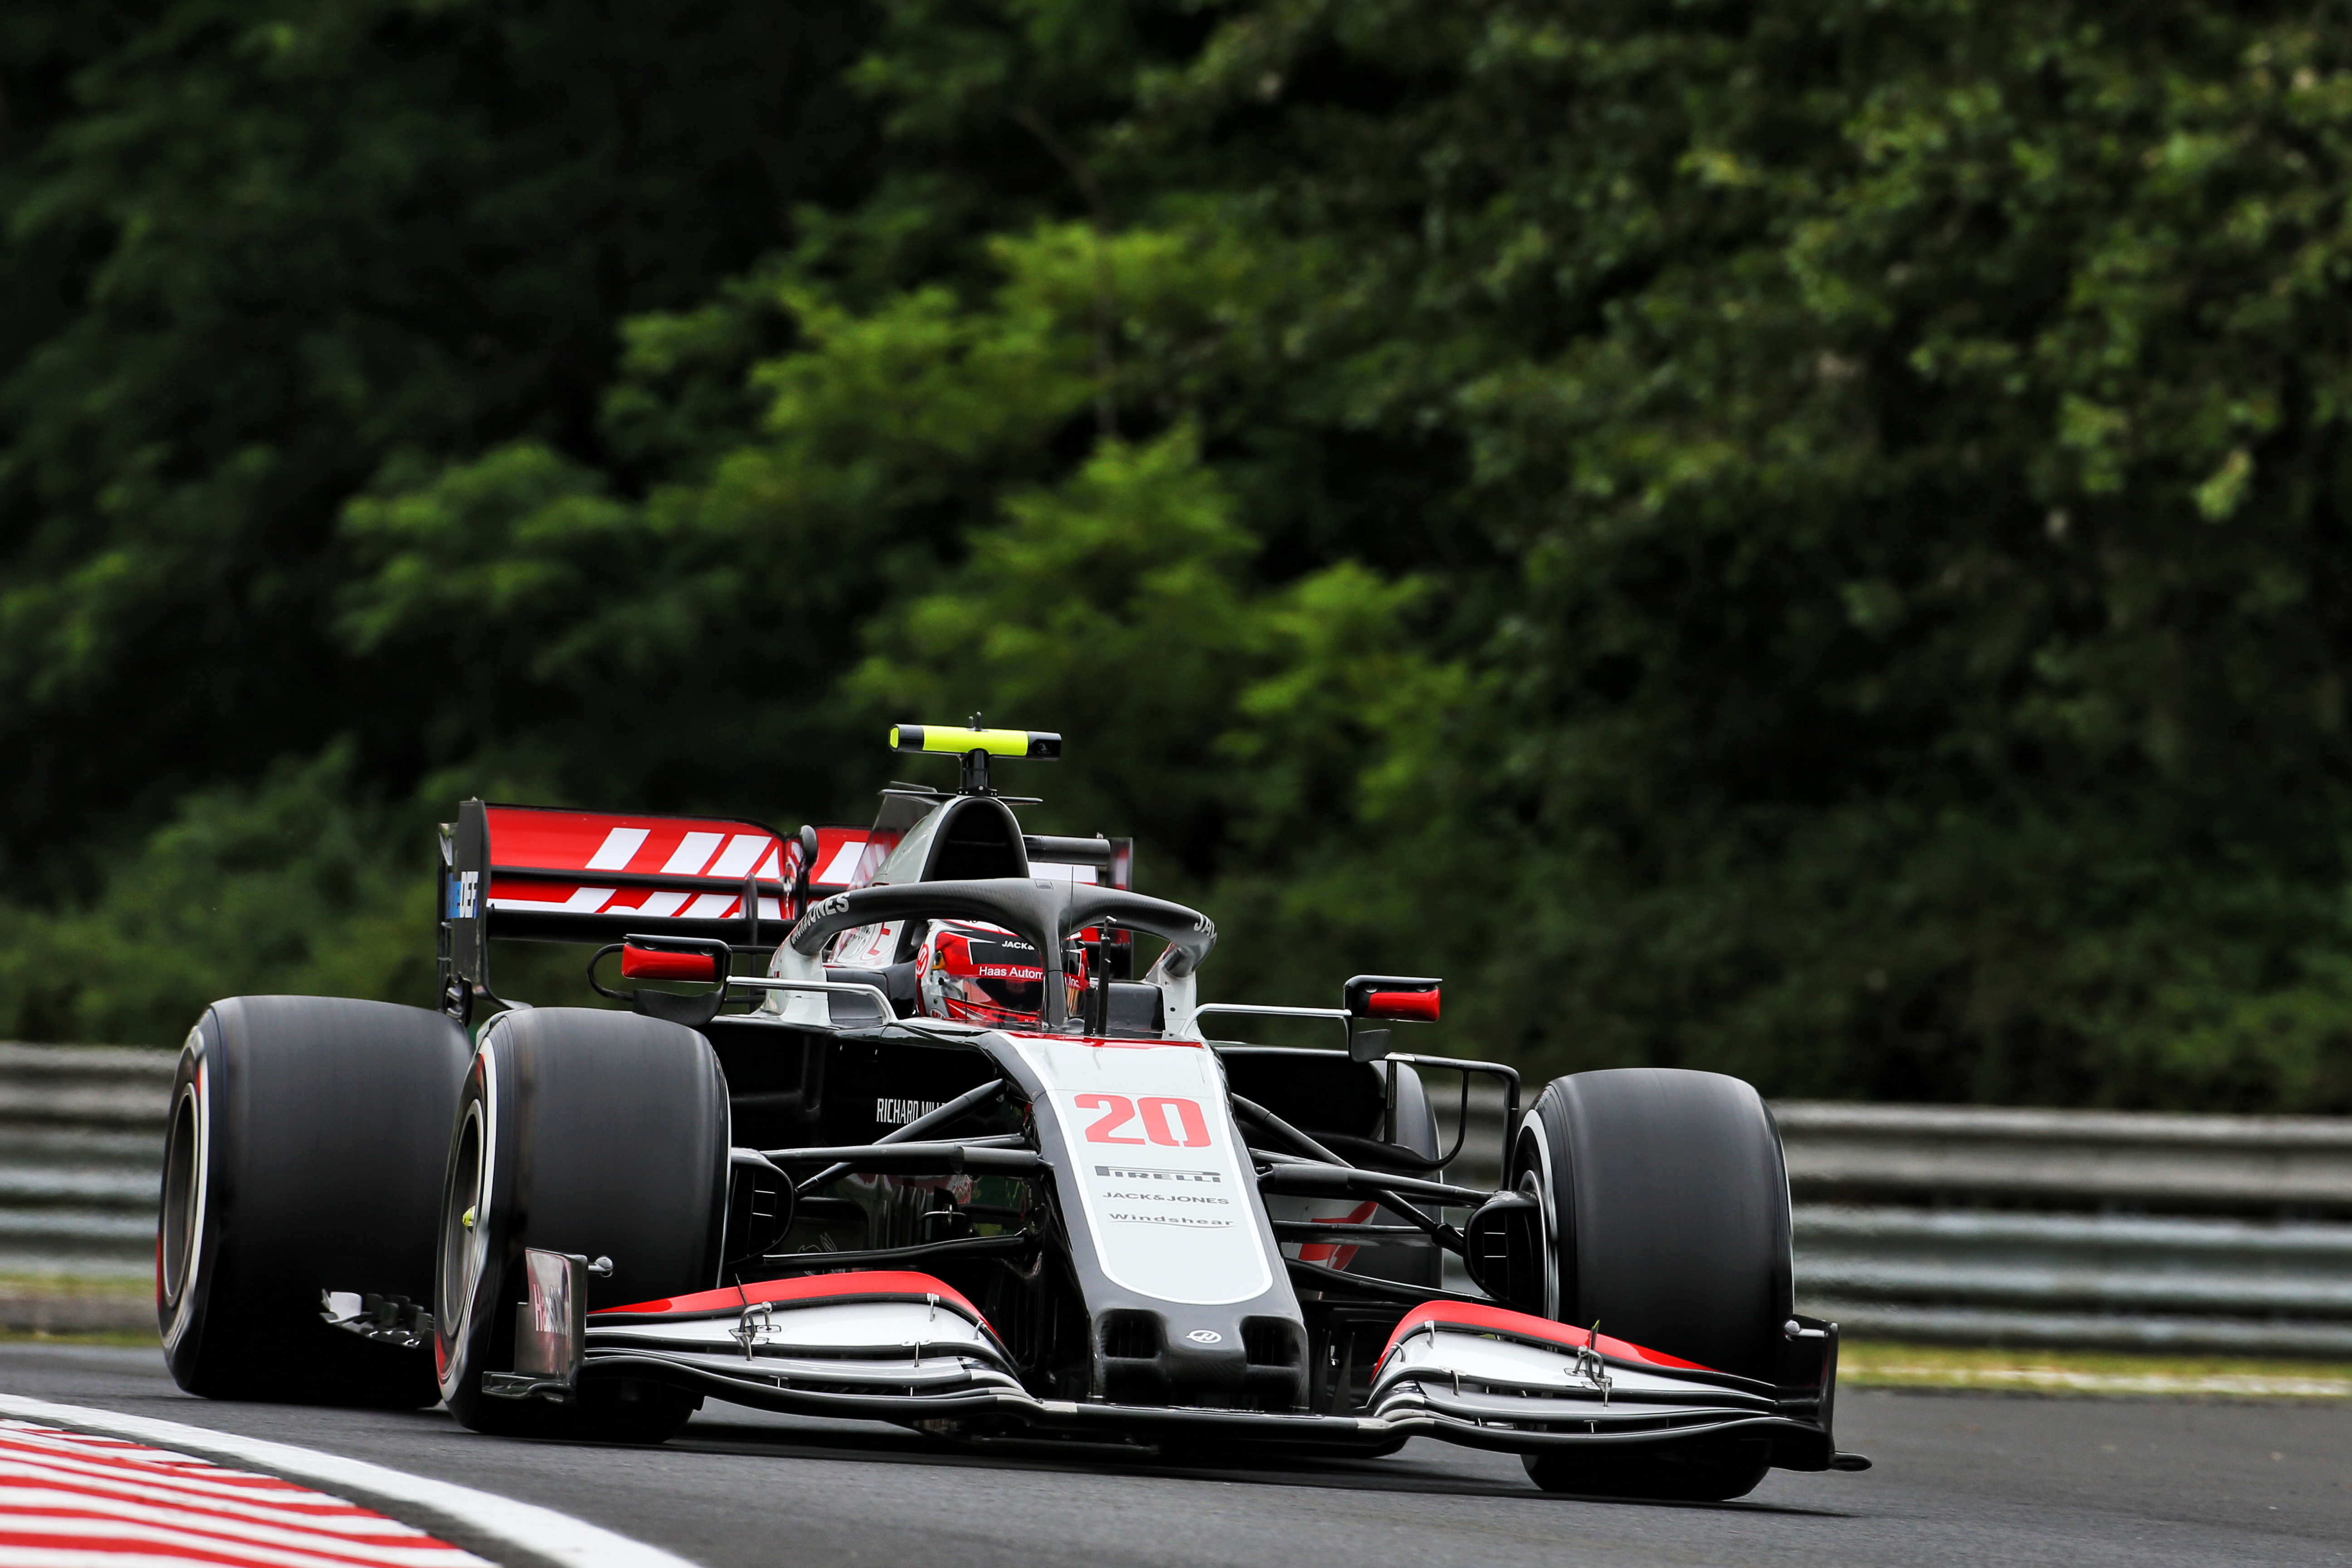 Kevin Magnussen Haas F1 2020 Hungary